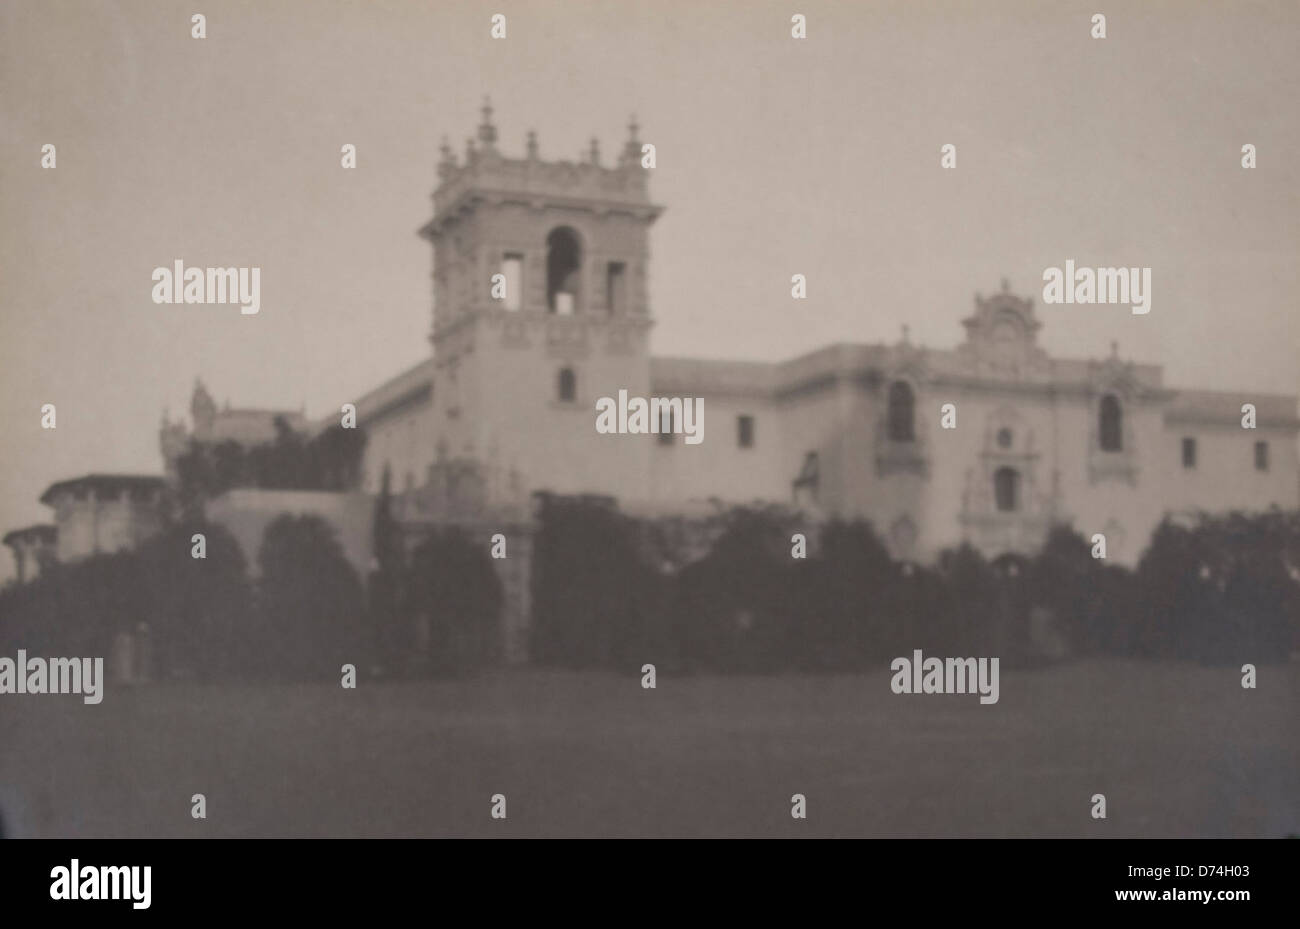 Foreign Arts Building (Panama-California Exposition) - Stock Image